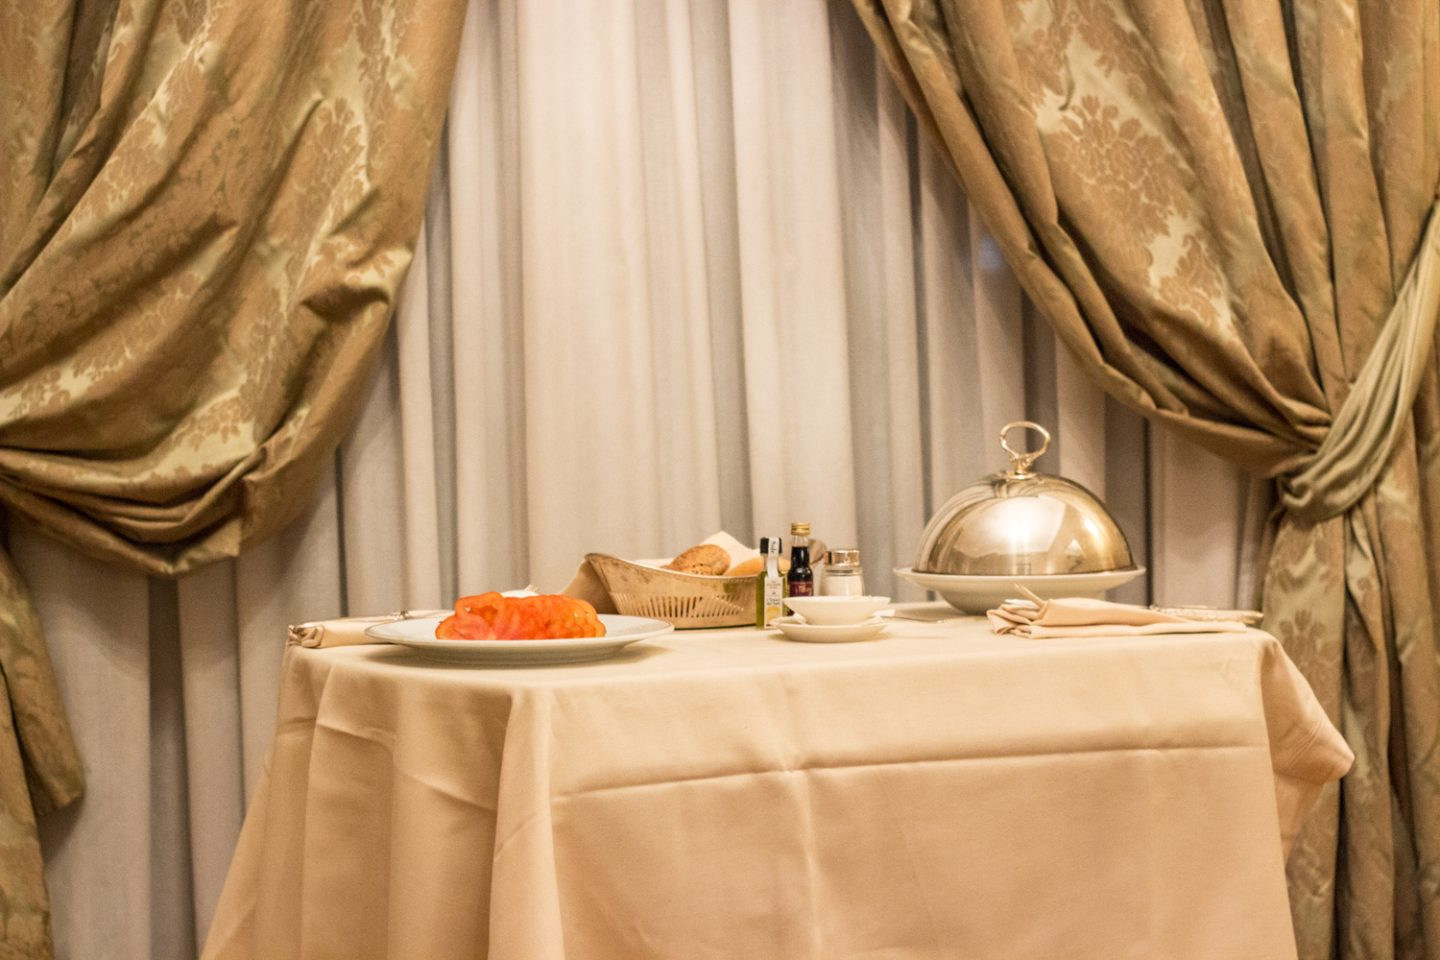 Staying At Eurostars Hotel Excelsior In Naples Dianamiaus